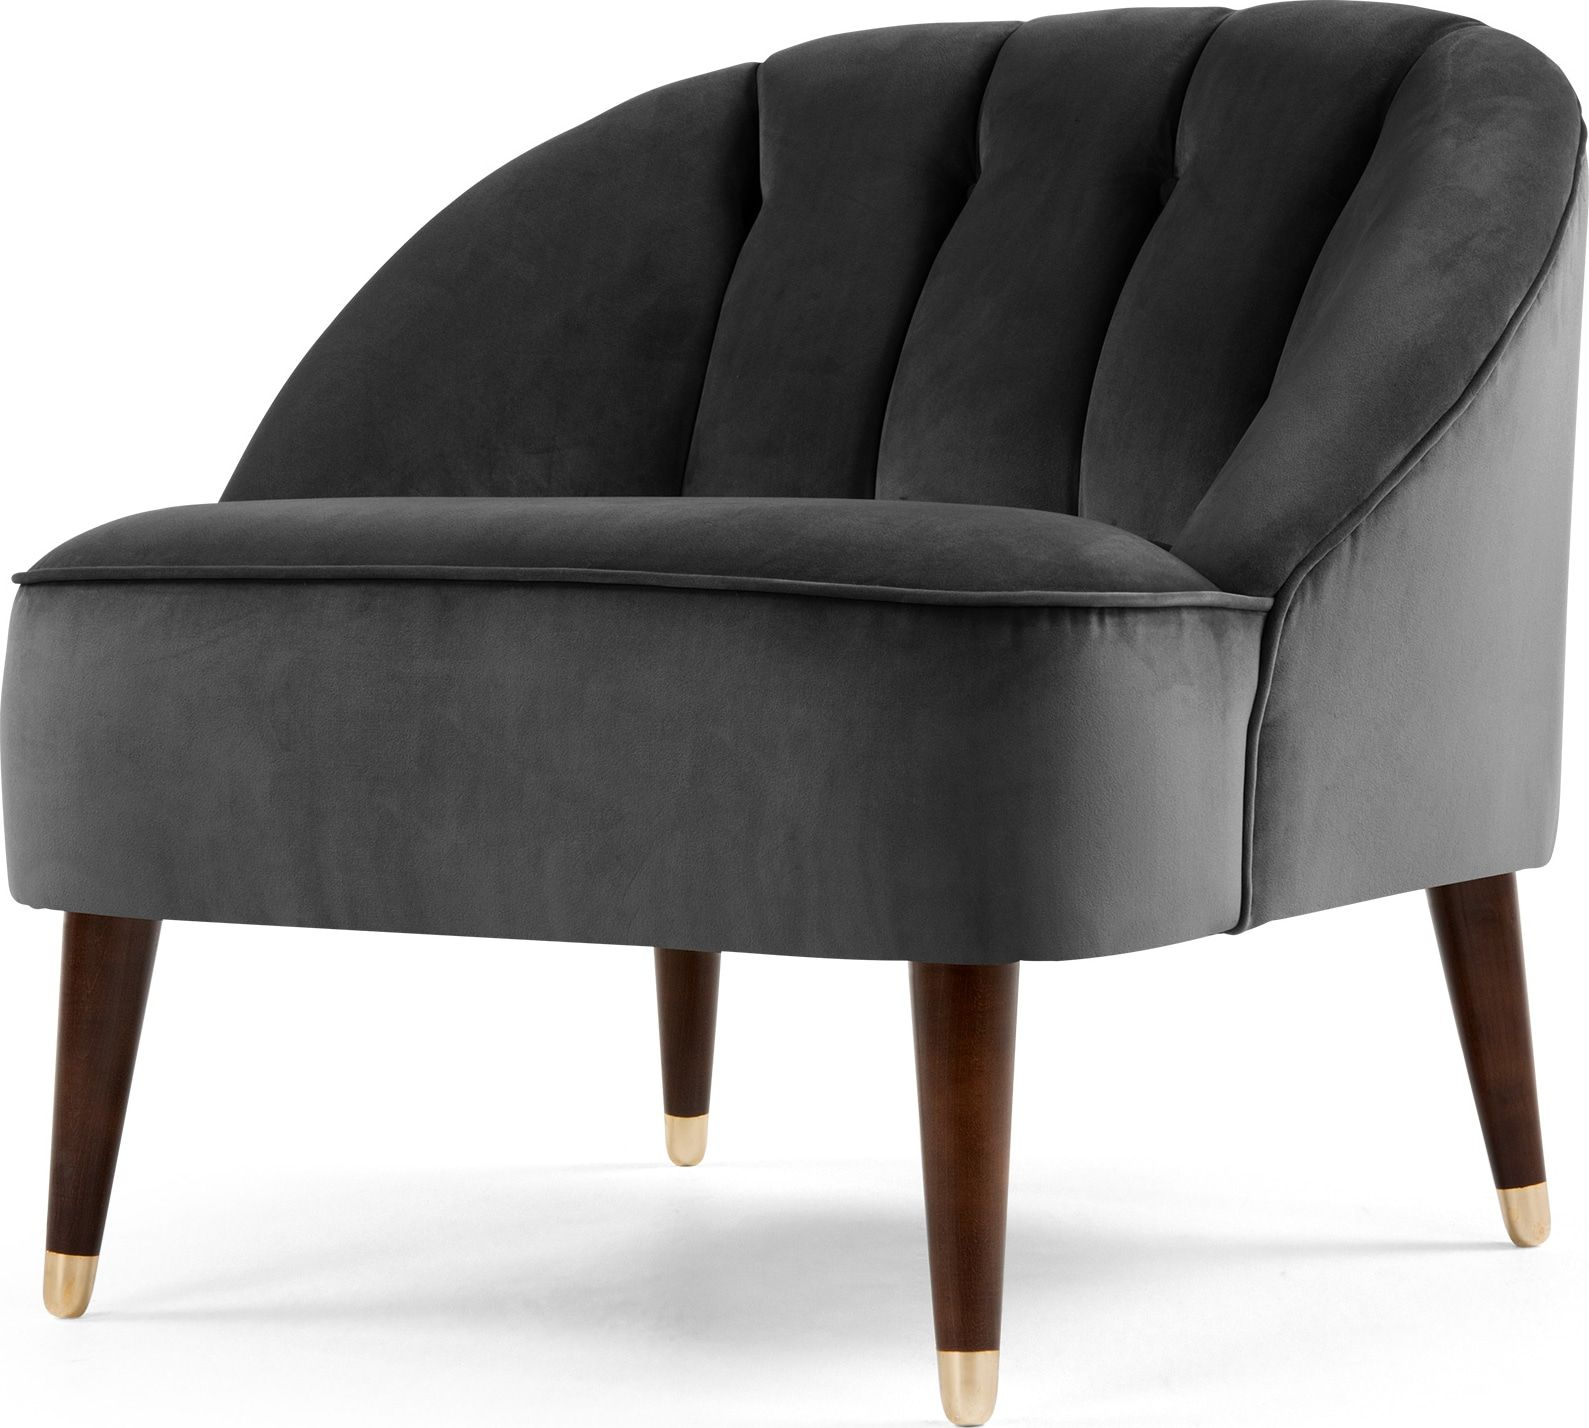 Stupendous Margot Accent Chair Pewter Grey Velvet In 2019 Furniture Caraccident5 Cool Chair Designs And Ideas Caraccident5Info